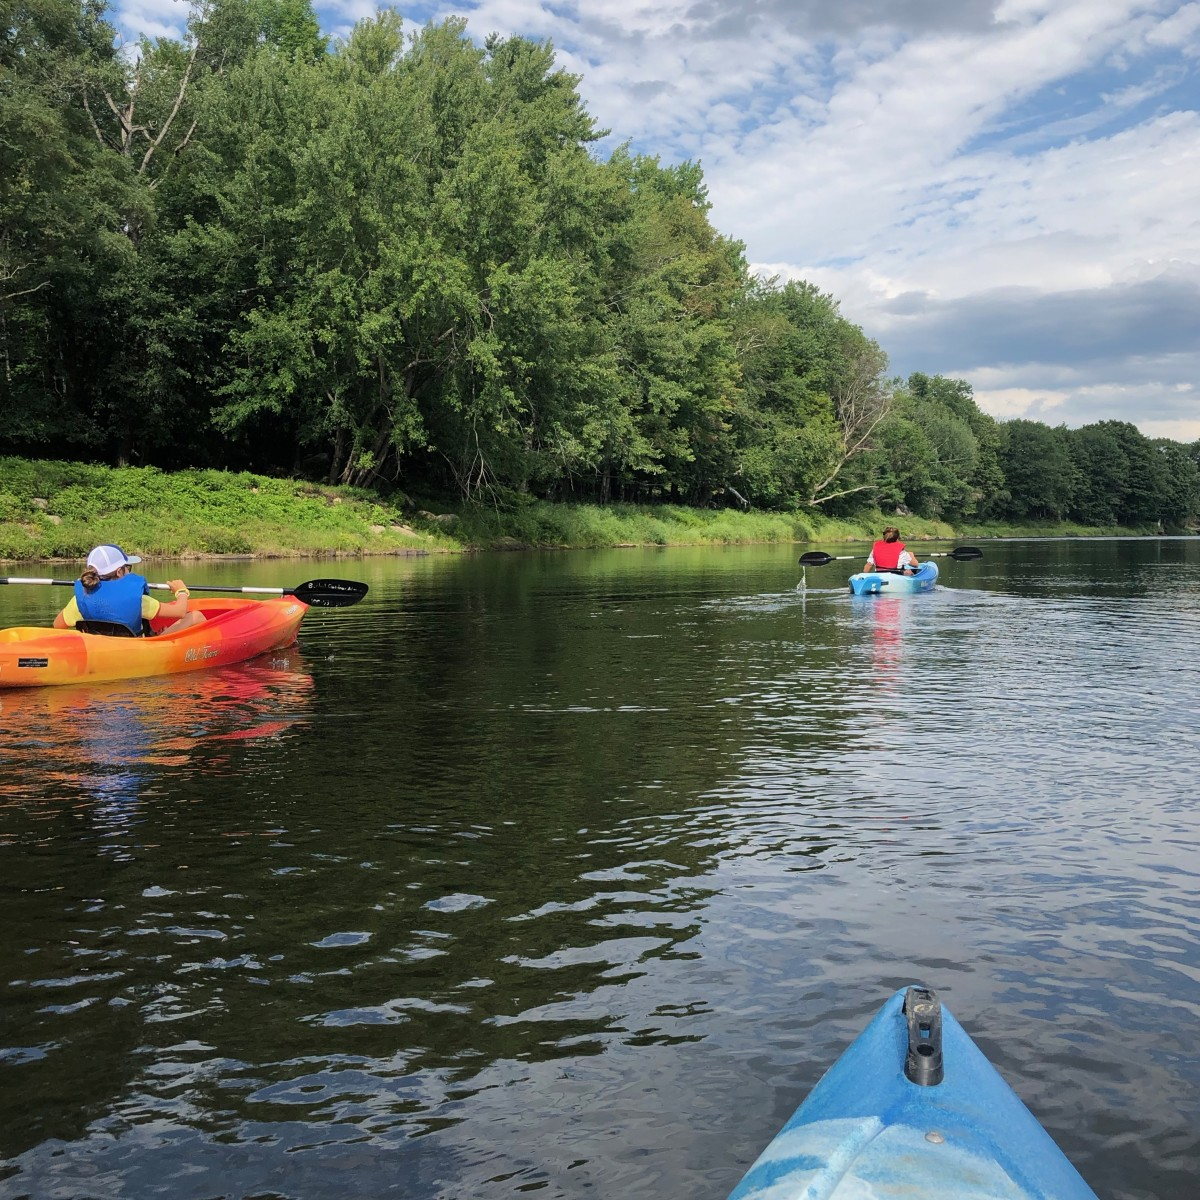 kayaking on the Androscoggin River